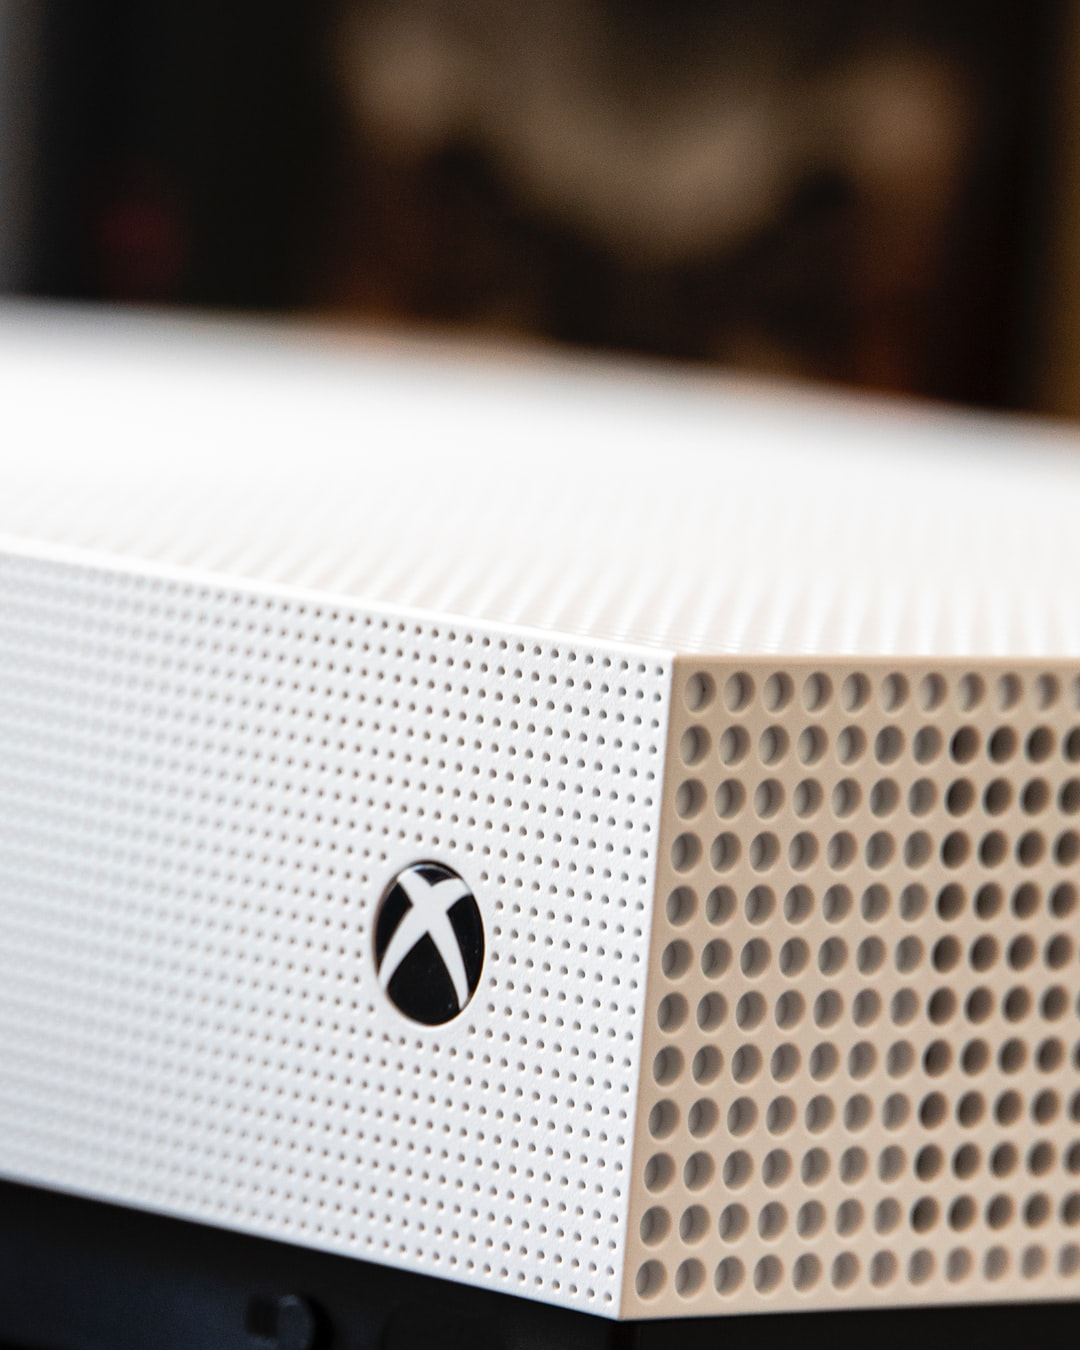 Xbox one S Product shot Follow me on instagram @iamthecho